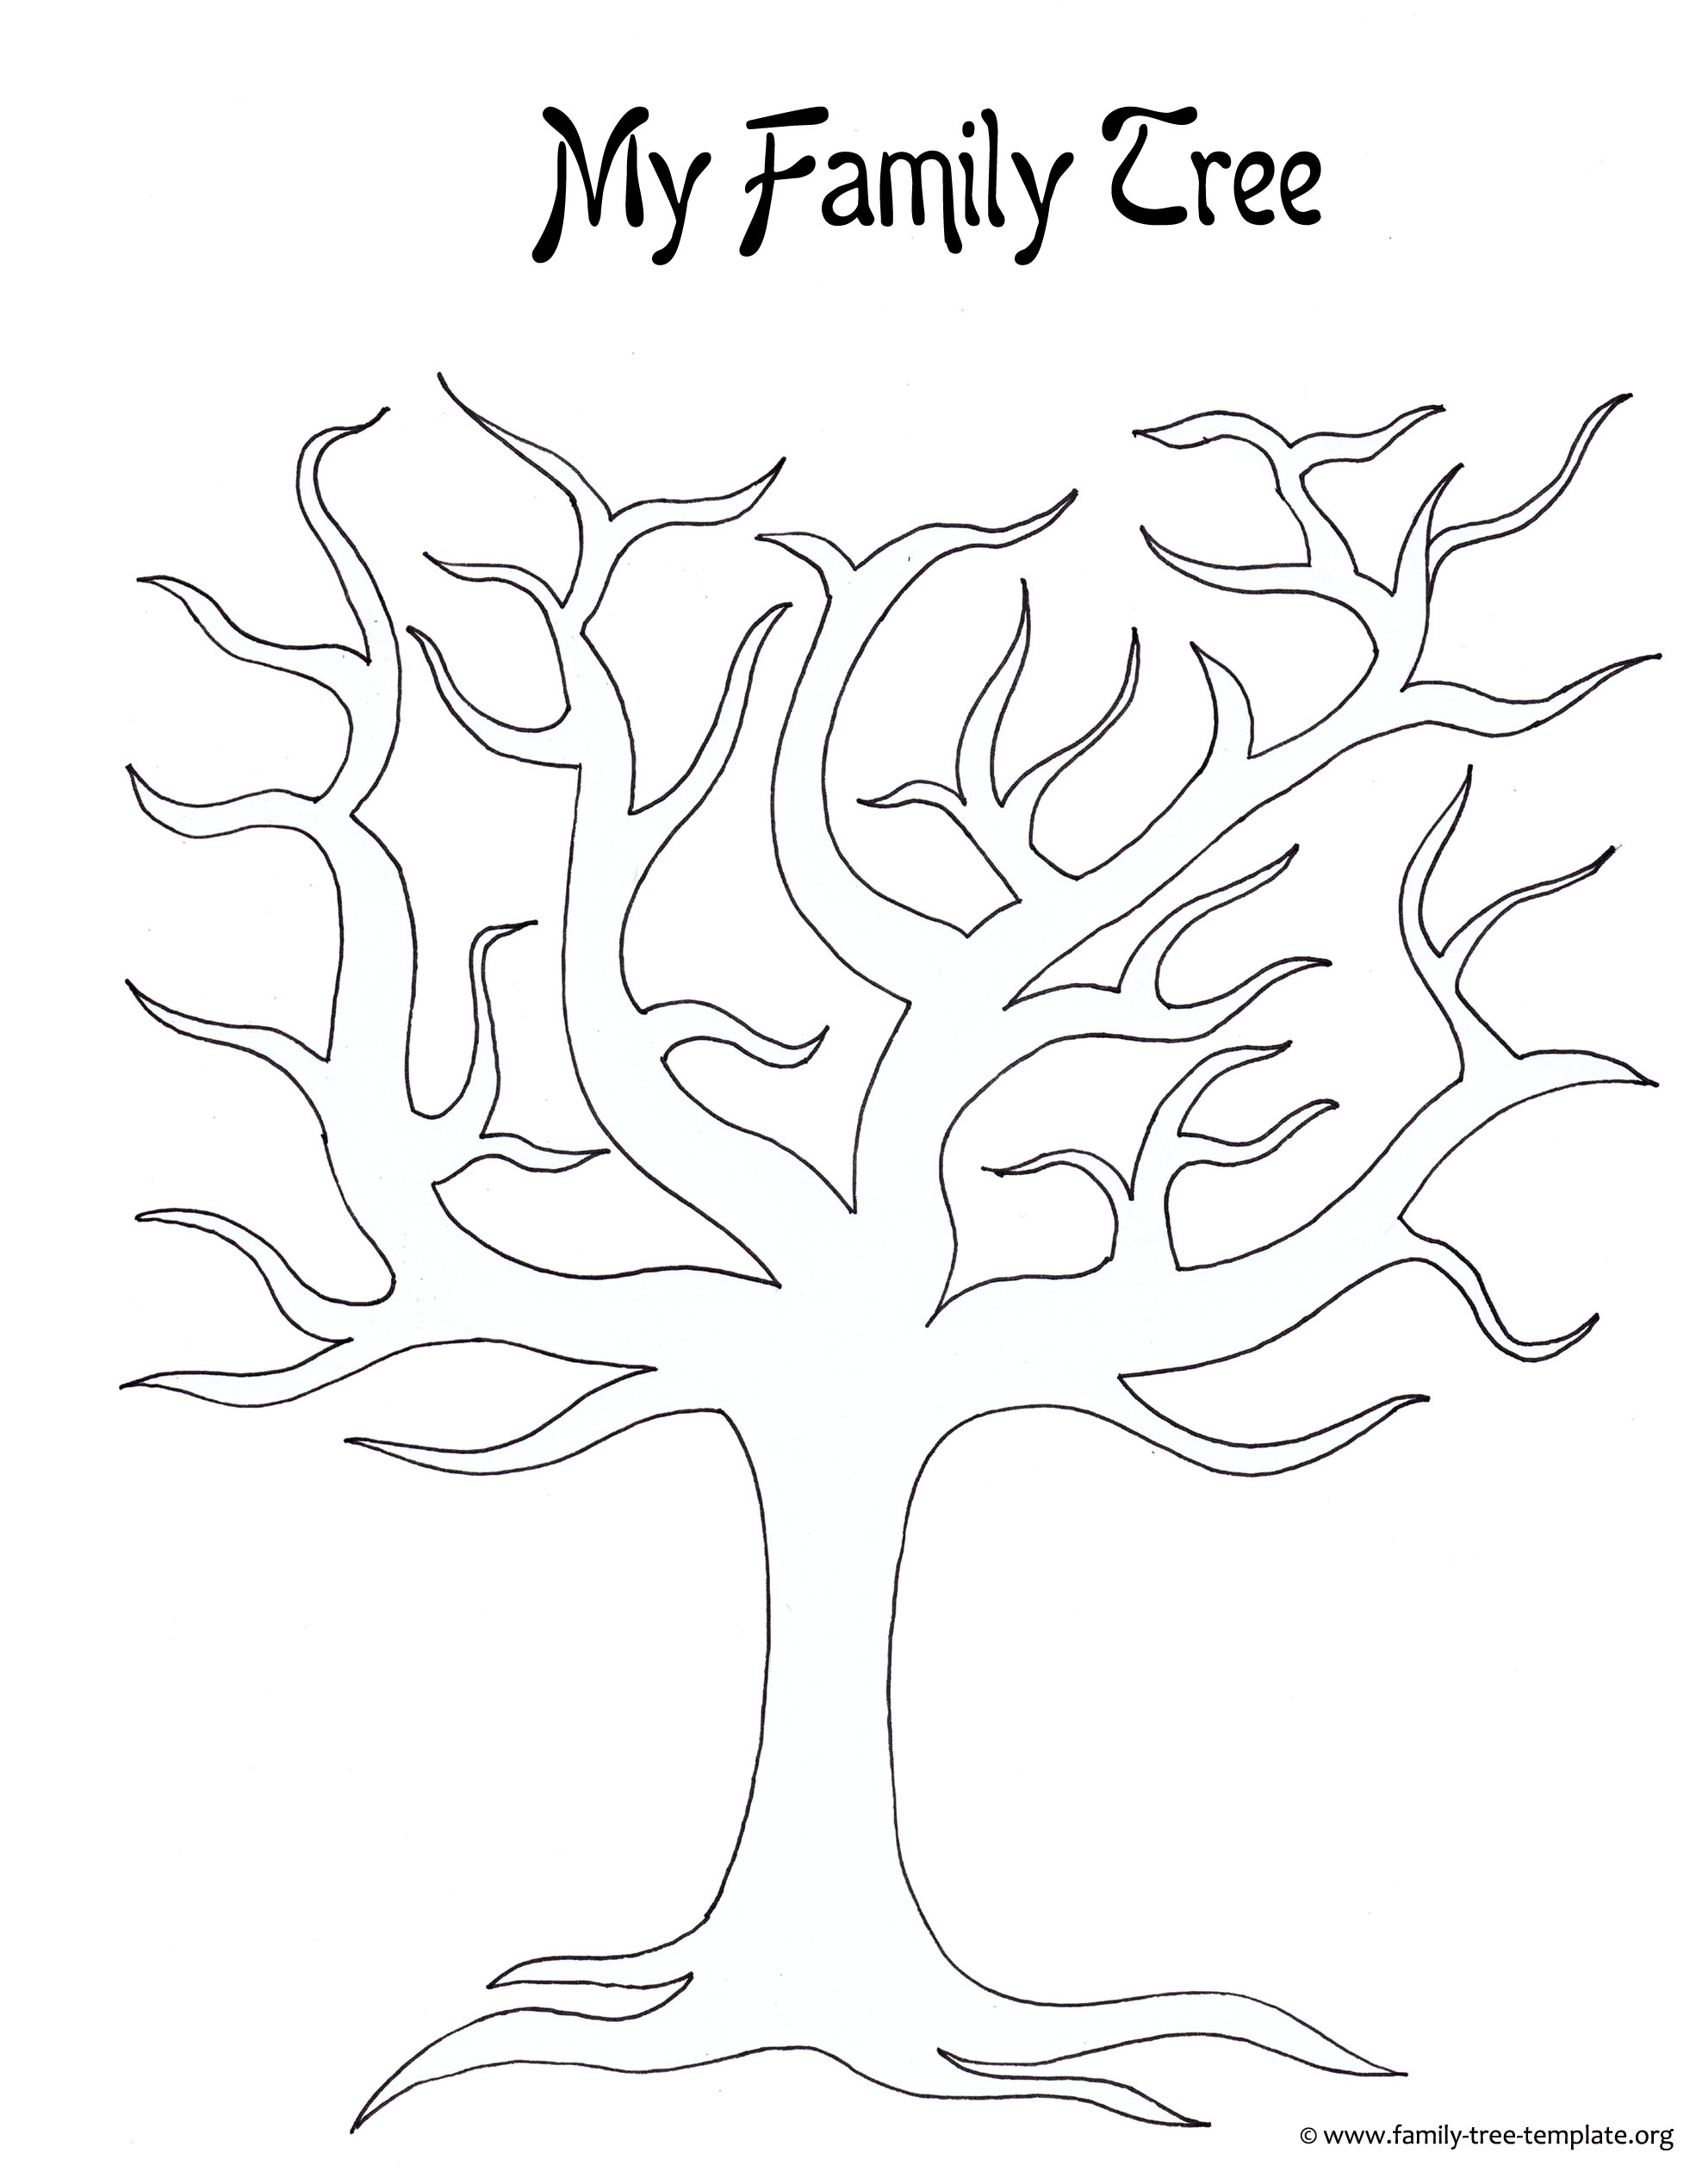 Slobbery image for tree outline printable